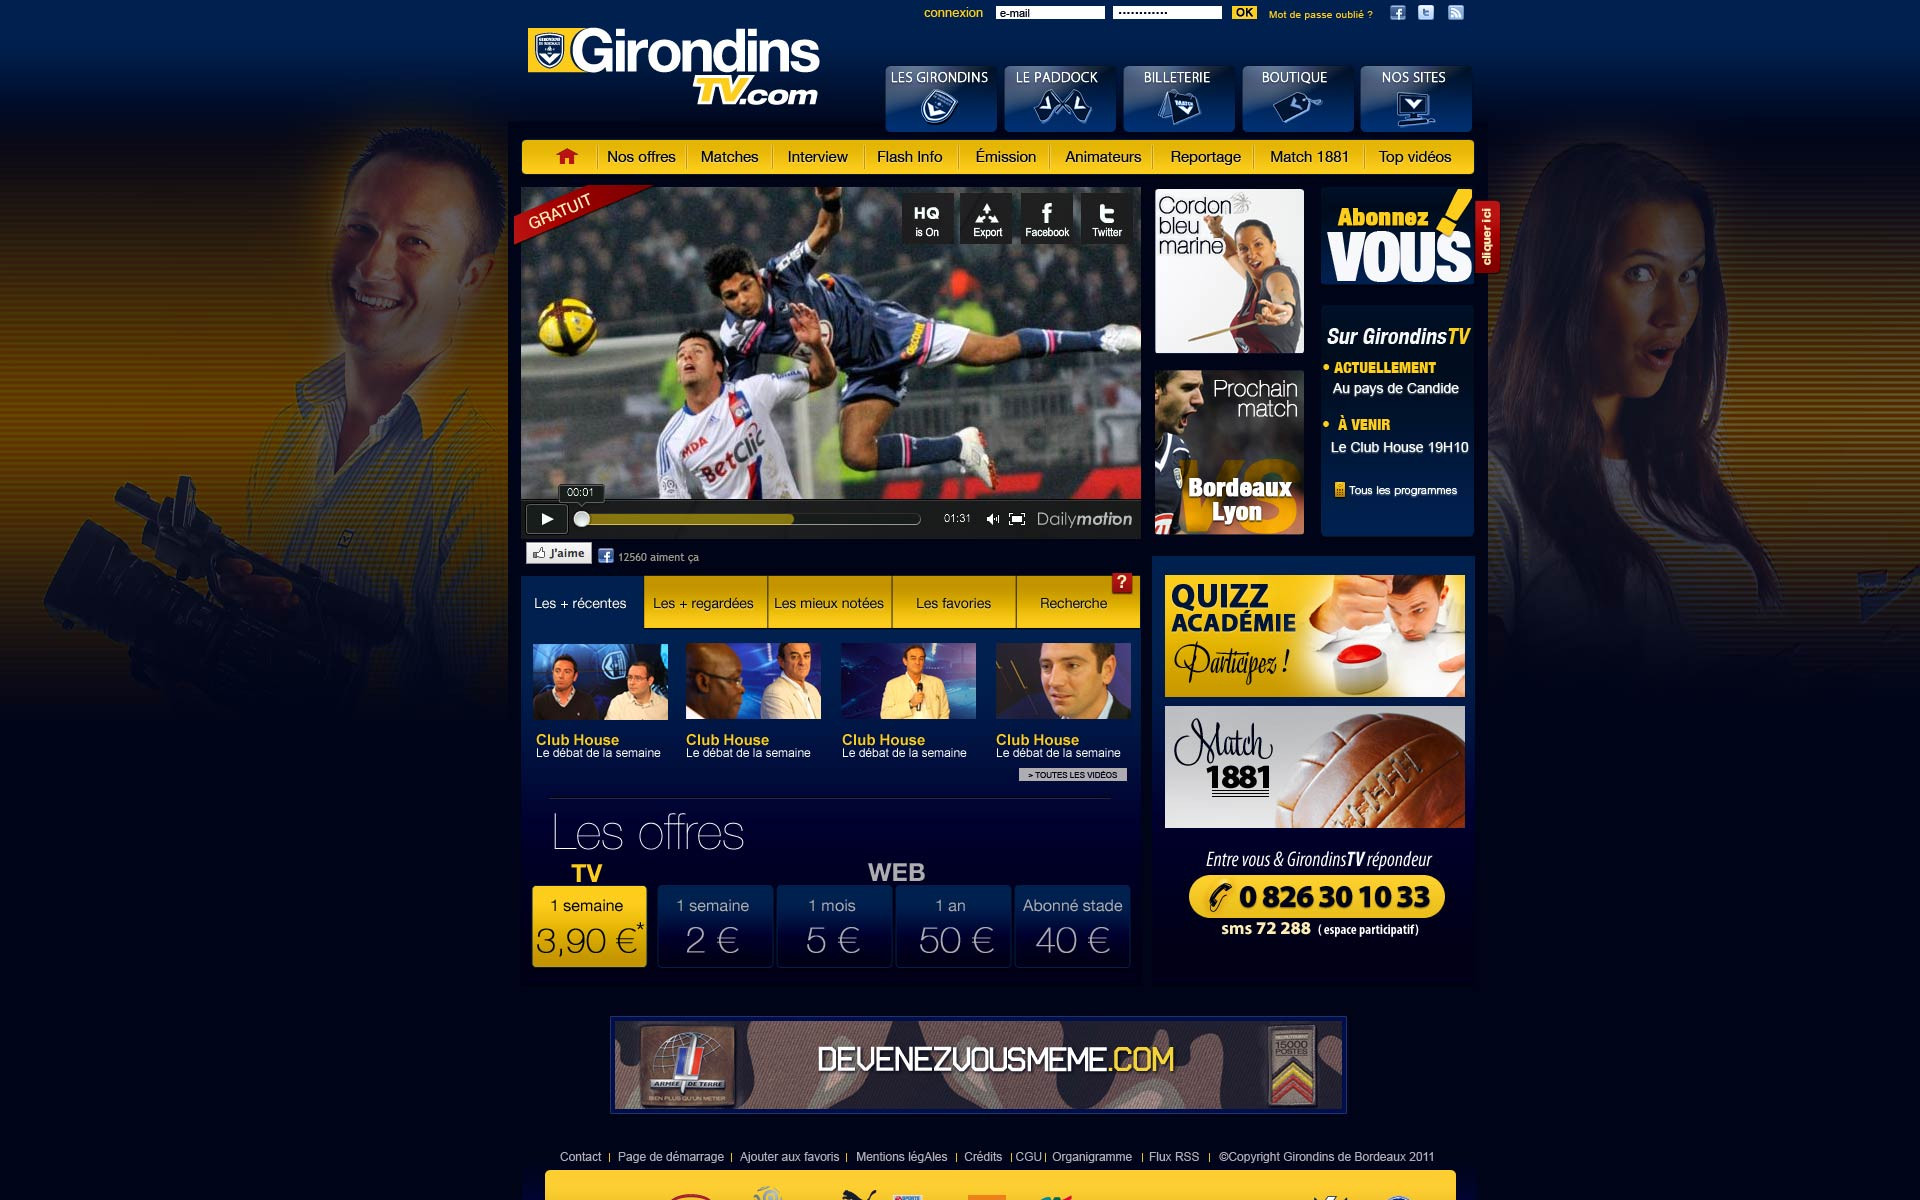 Copy of GirondinsTV.com : web TV du FC Girondins de Bordeaux.